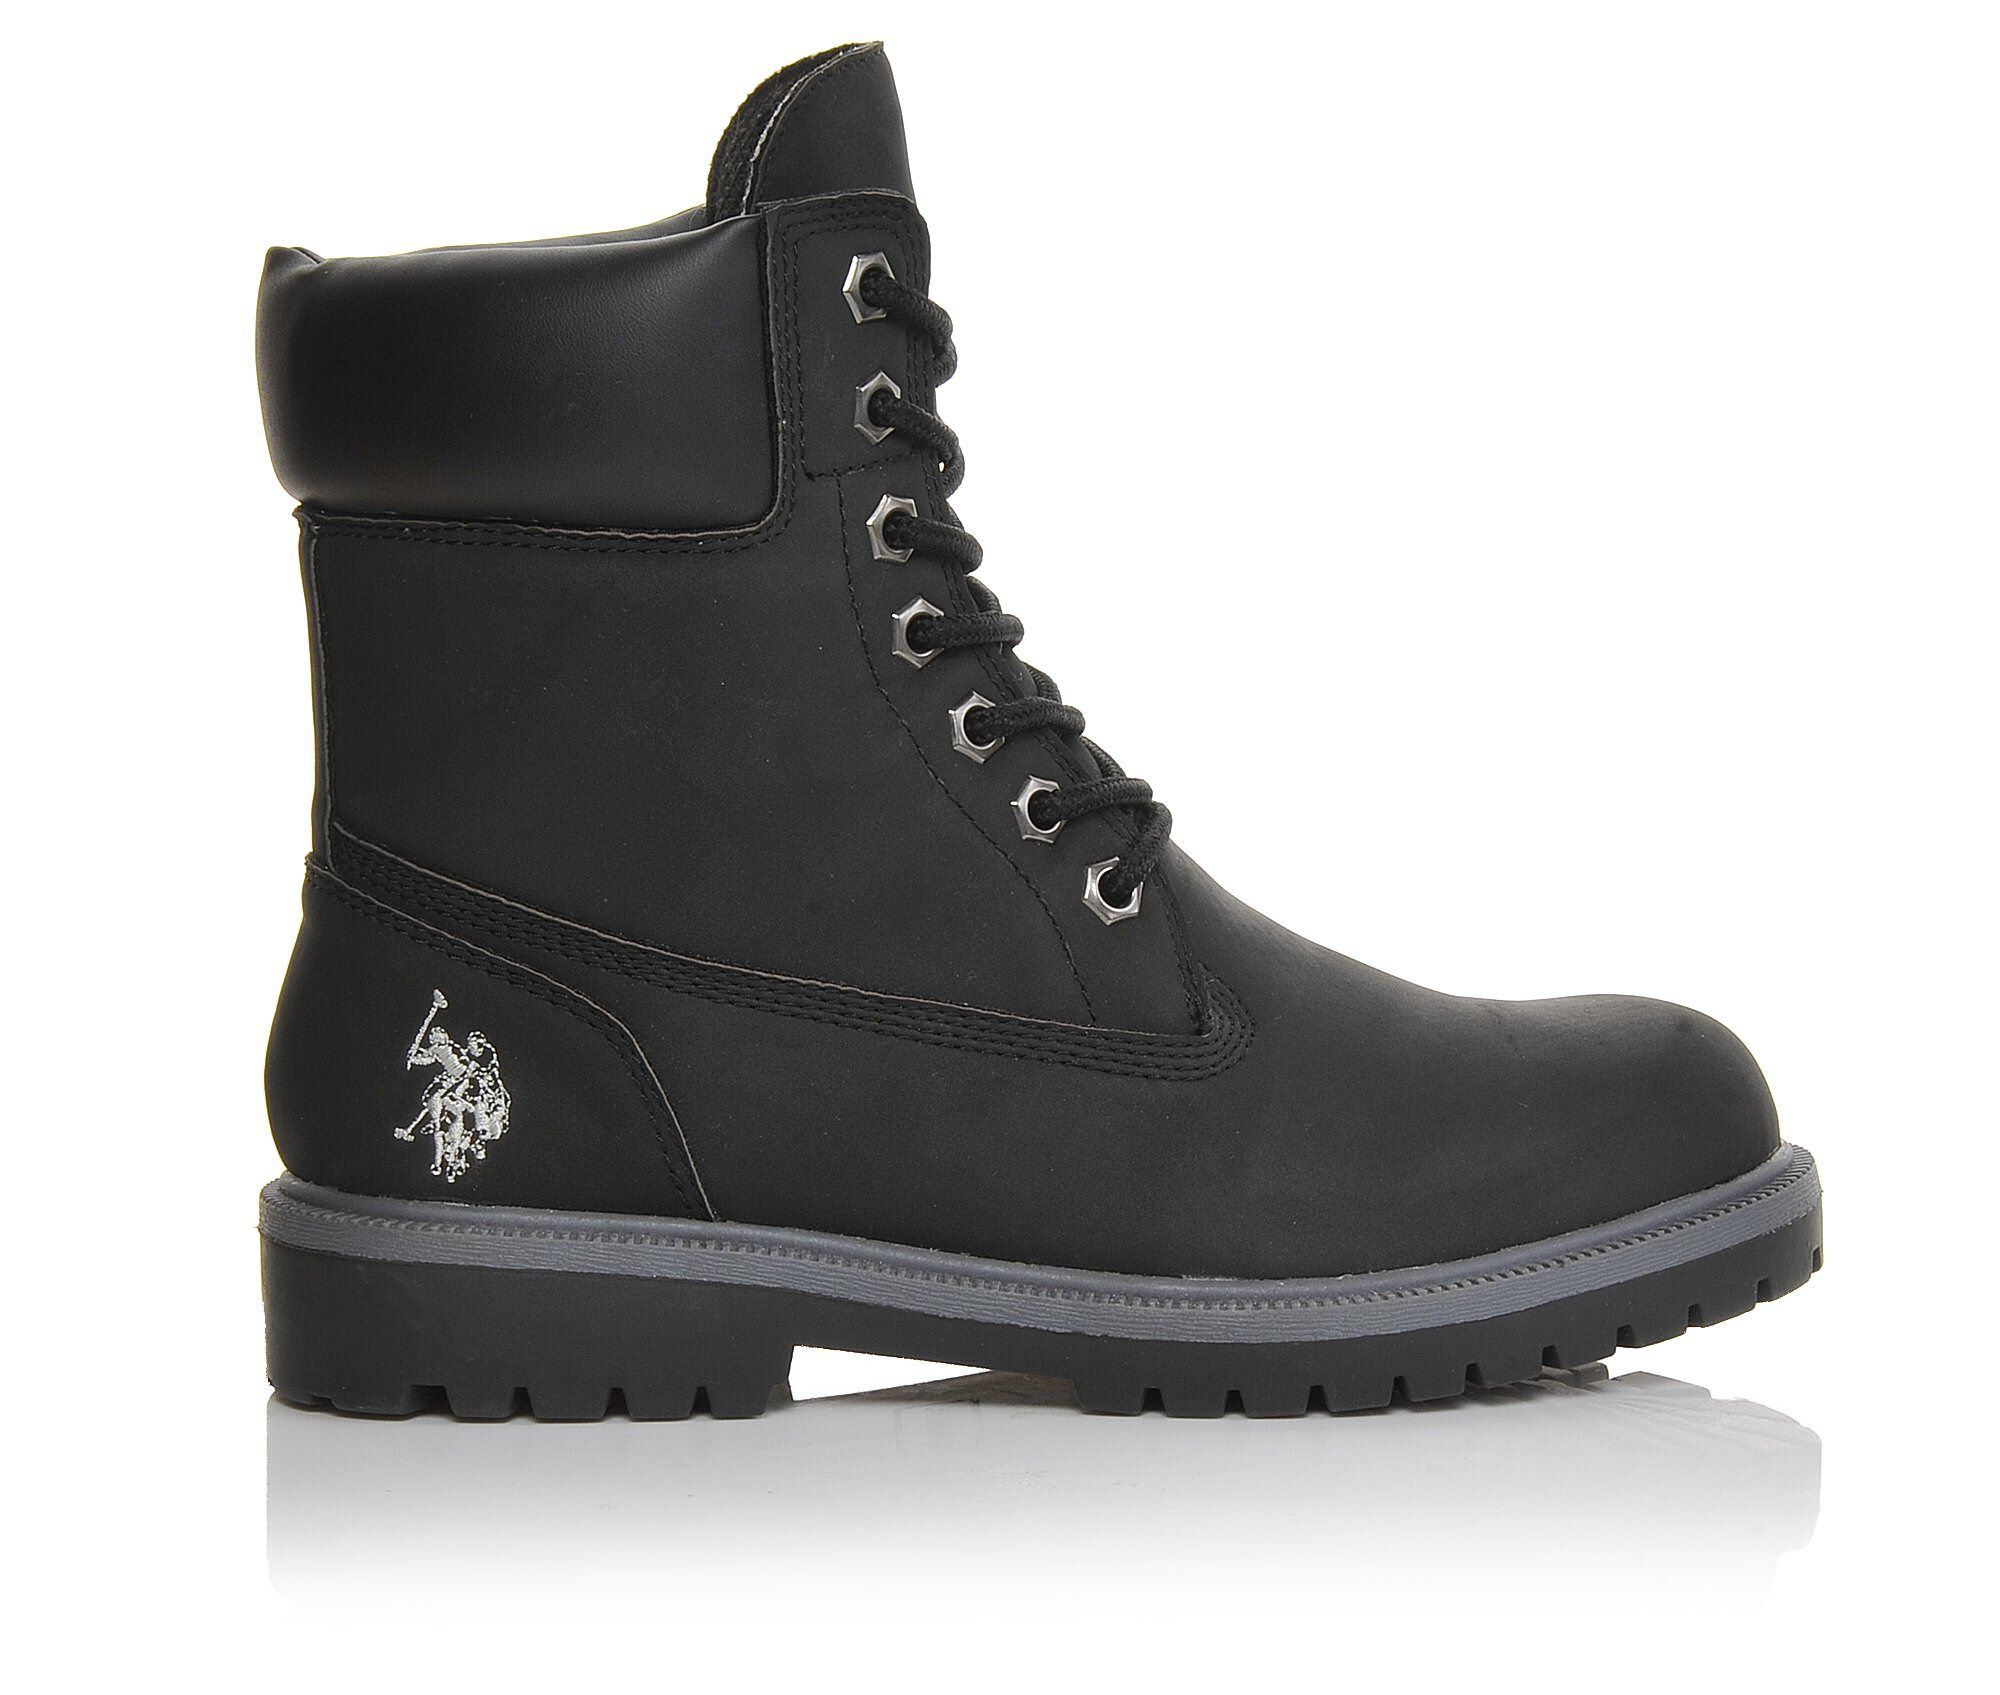 US Polo Assn 2-Rudy Boots   Shoe Carnival